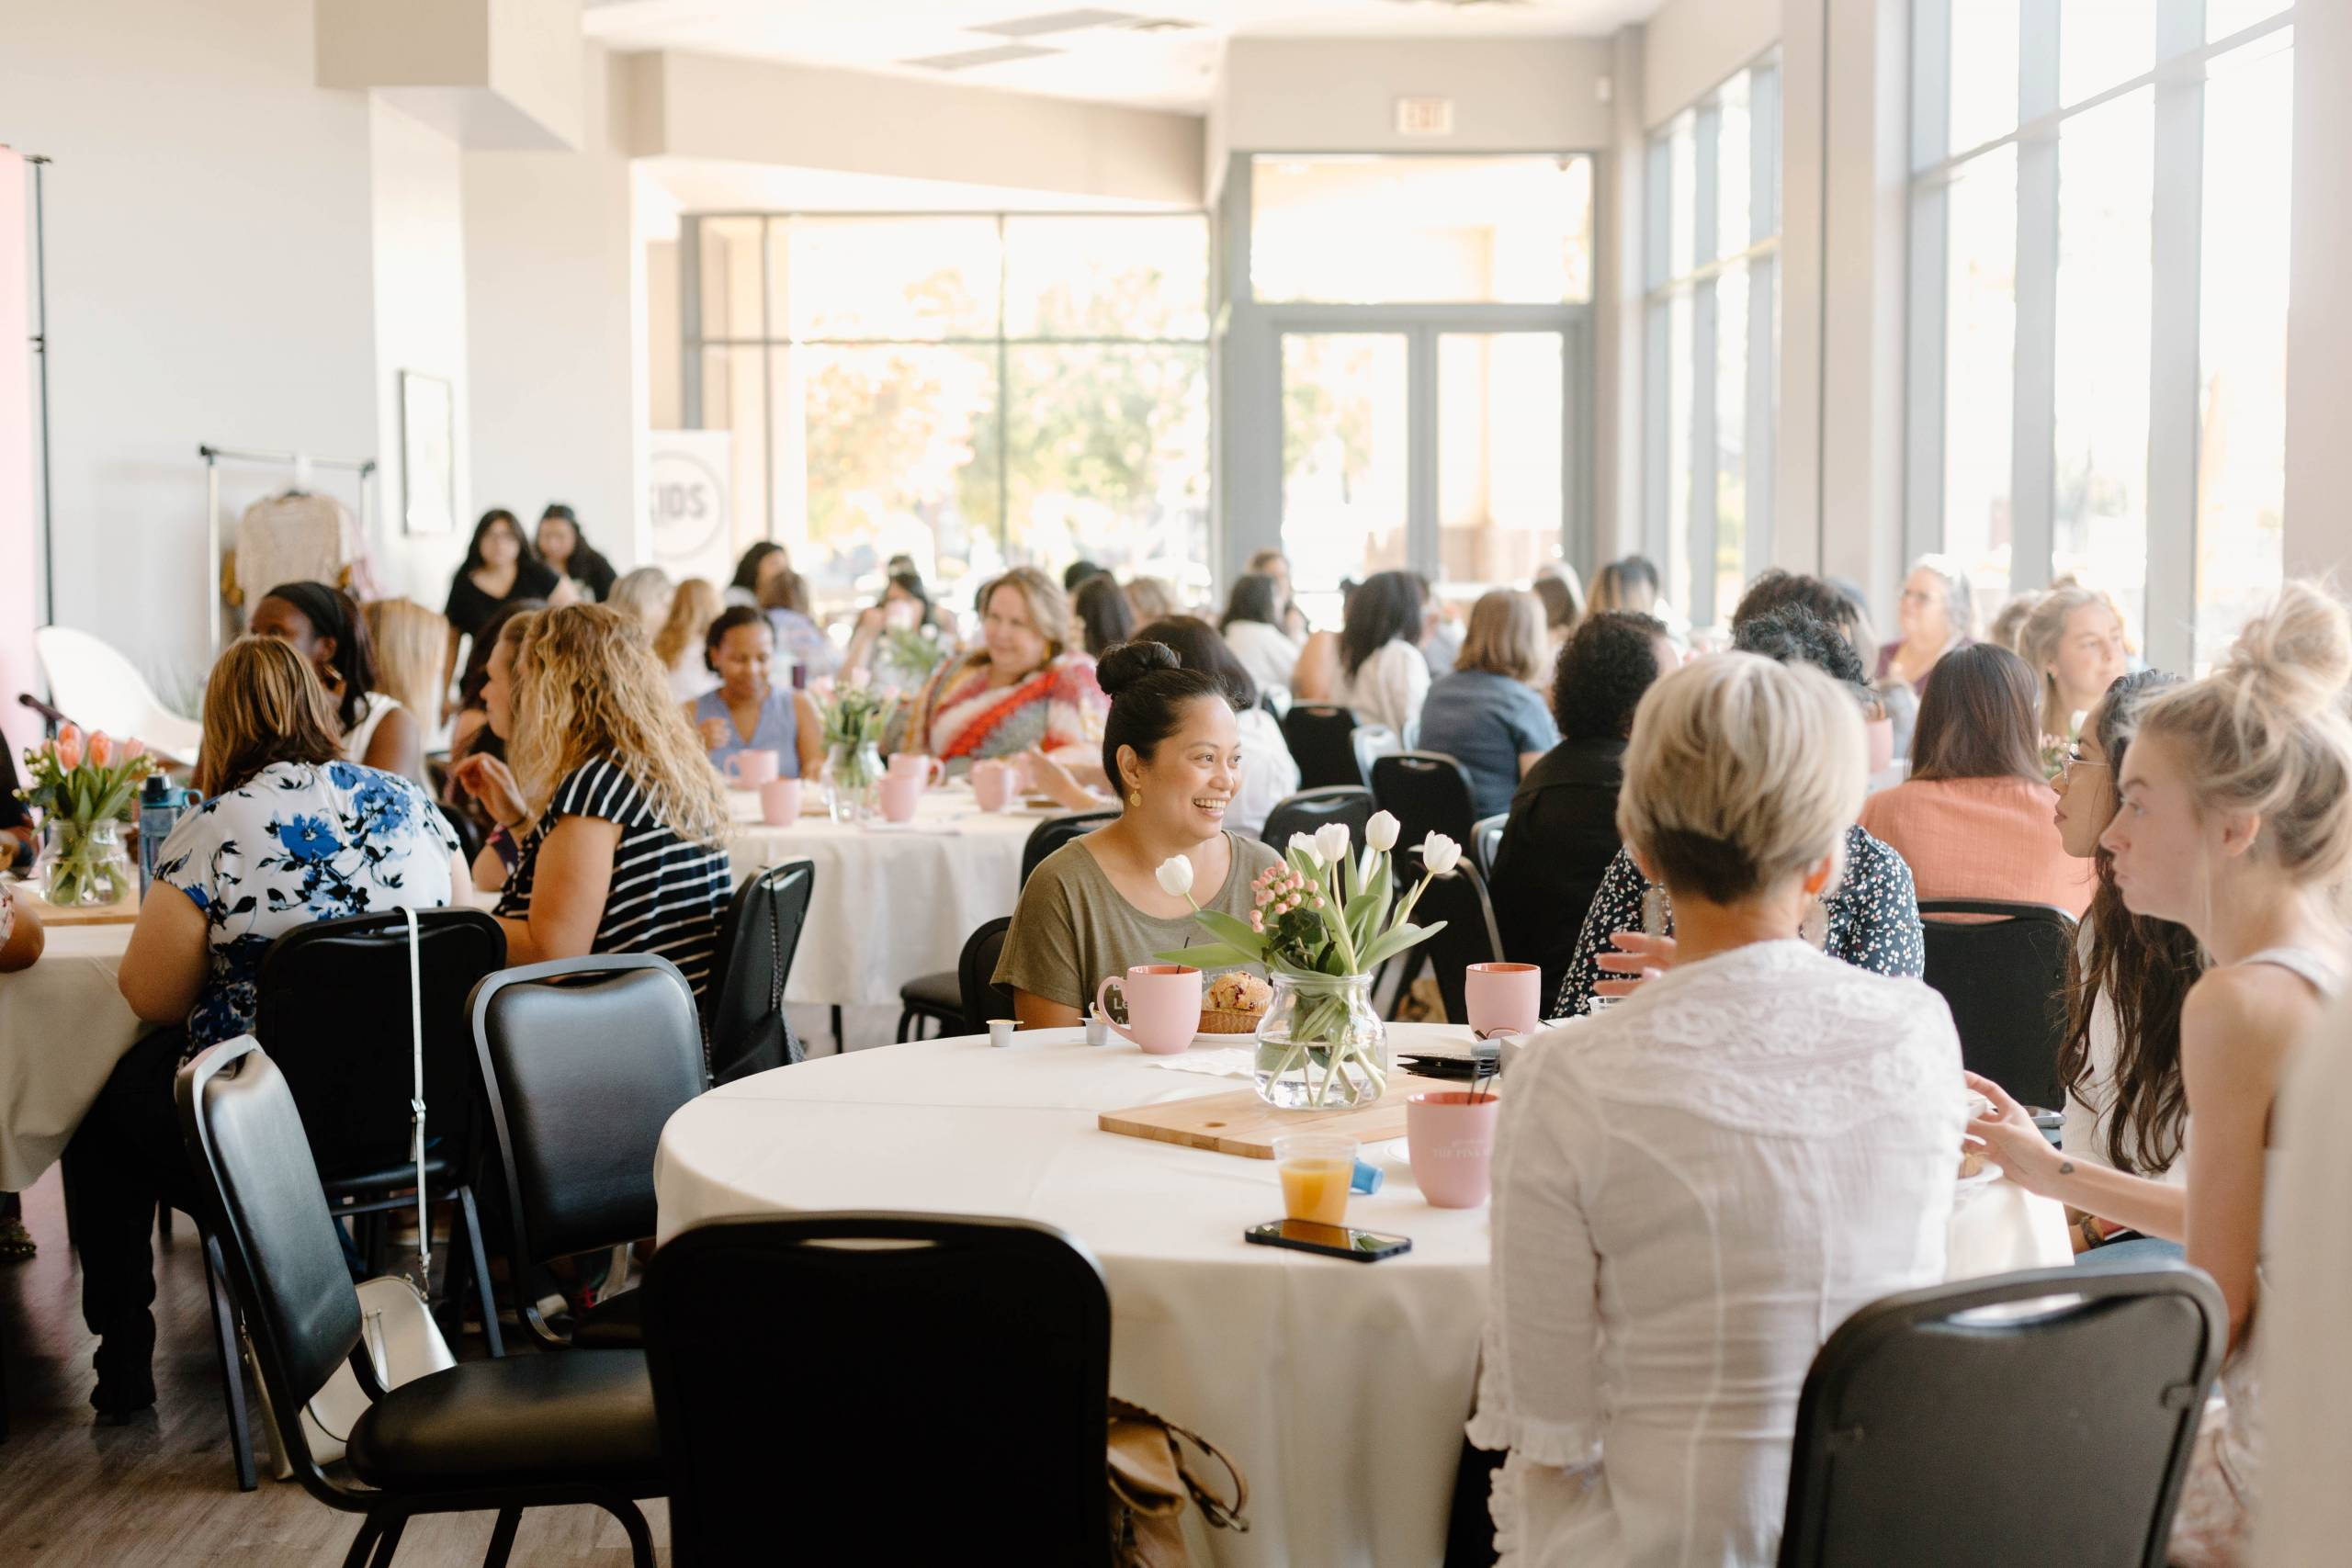 the women's ministry in Chandler Arizona gather at New Heights church around table to connect